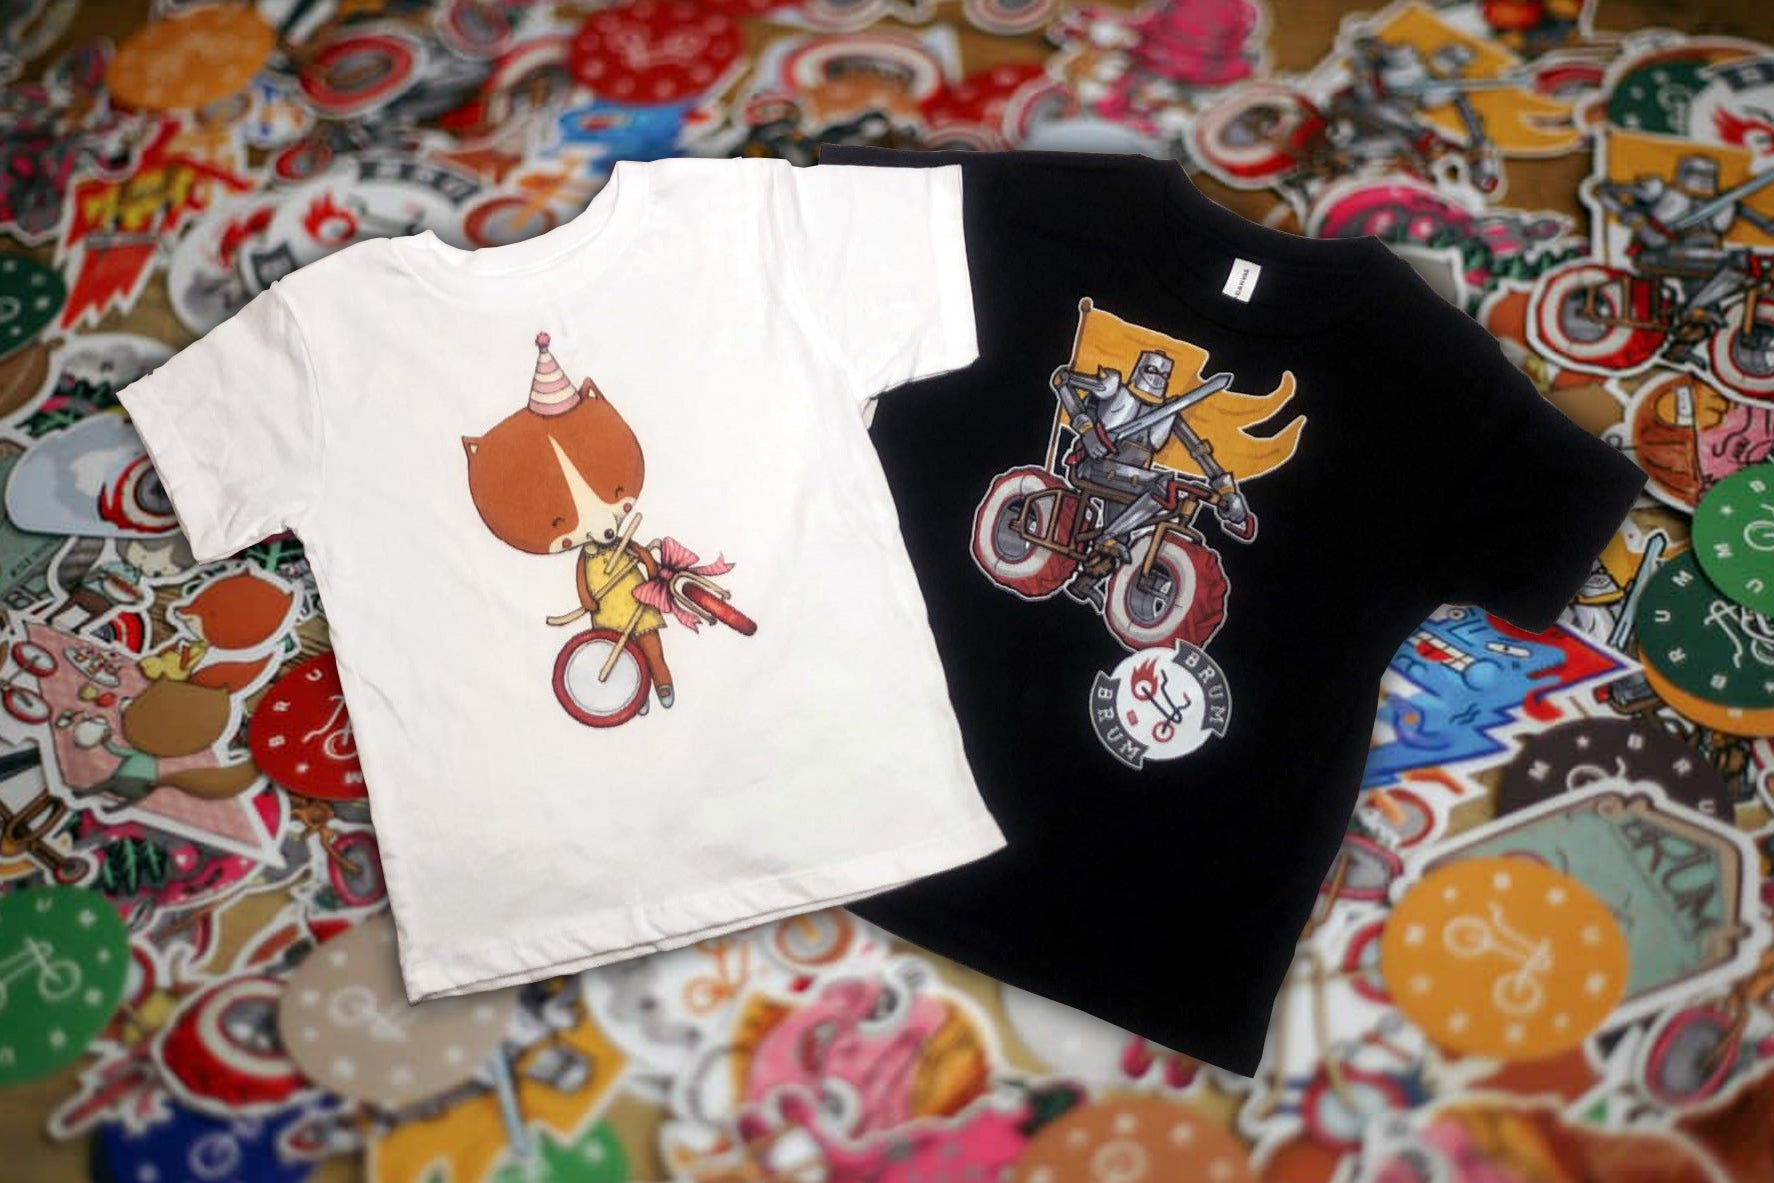 Design T-shirts with Brum Brum bike characters. Stylish and colorful gift from best Latvian designers to your child. It will makes your kid to feel as part of Brum Brum bikes explorers family.